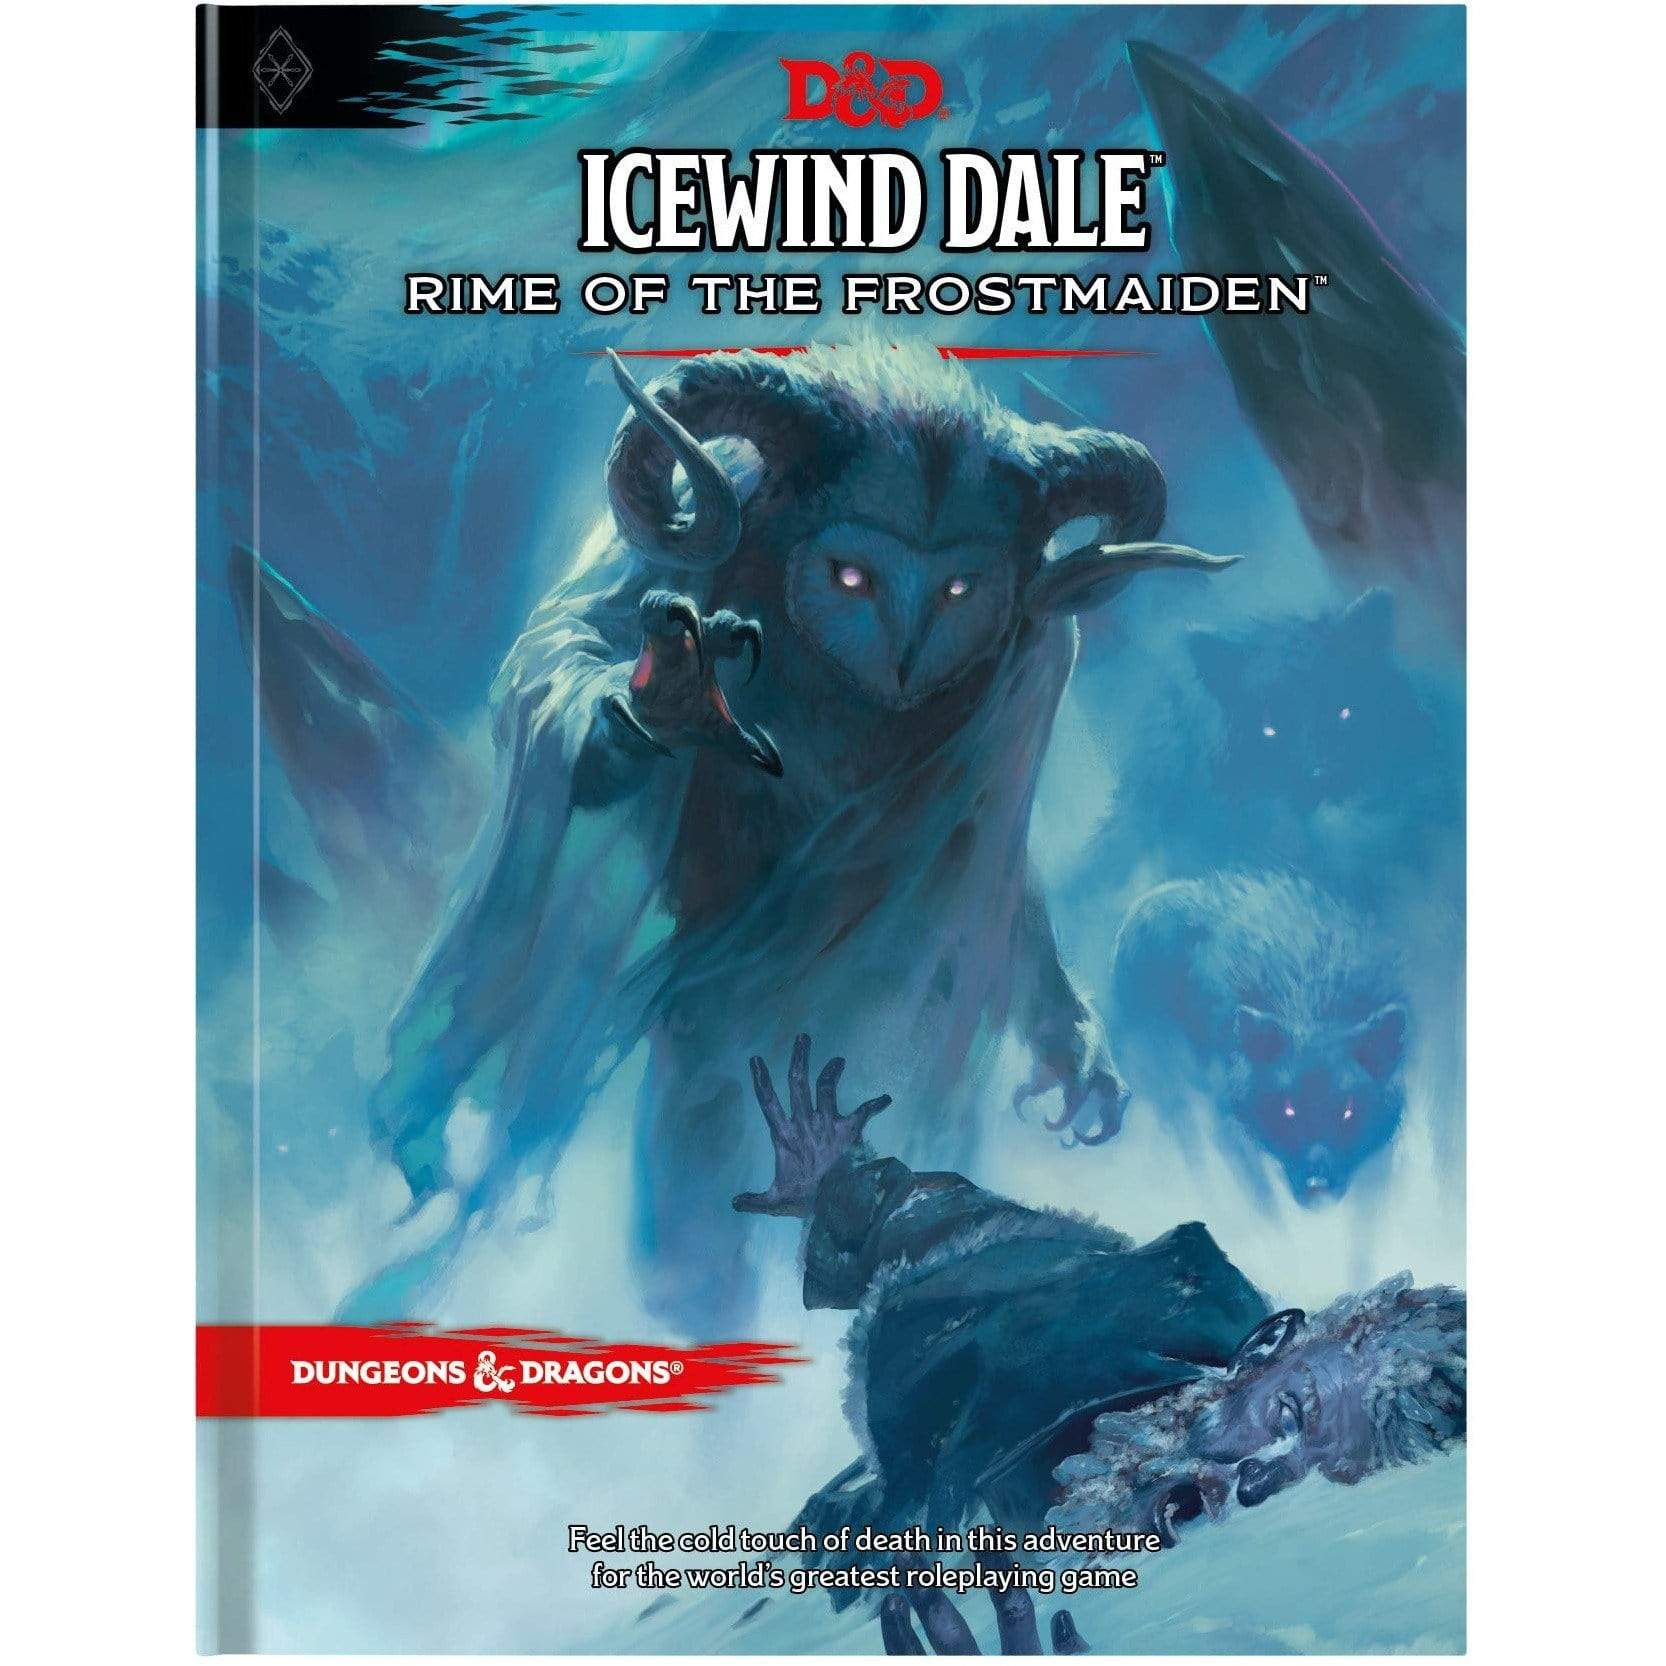 D&D: Icewind Dale Wizards of the Coast Board Games